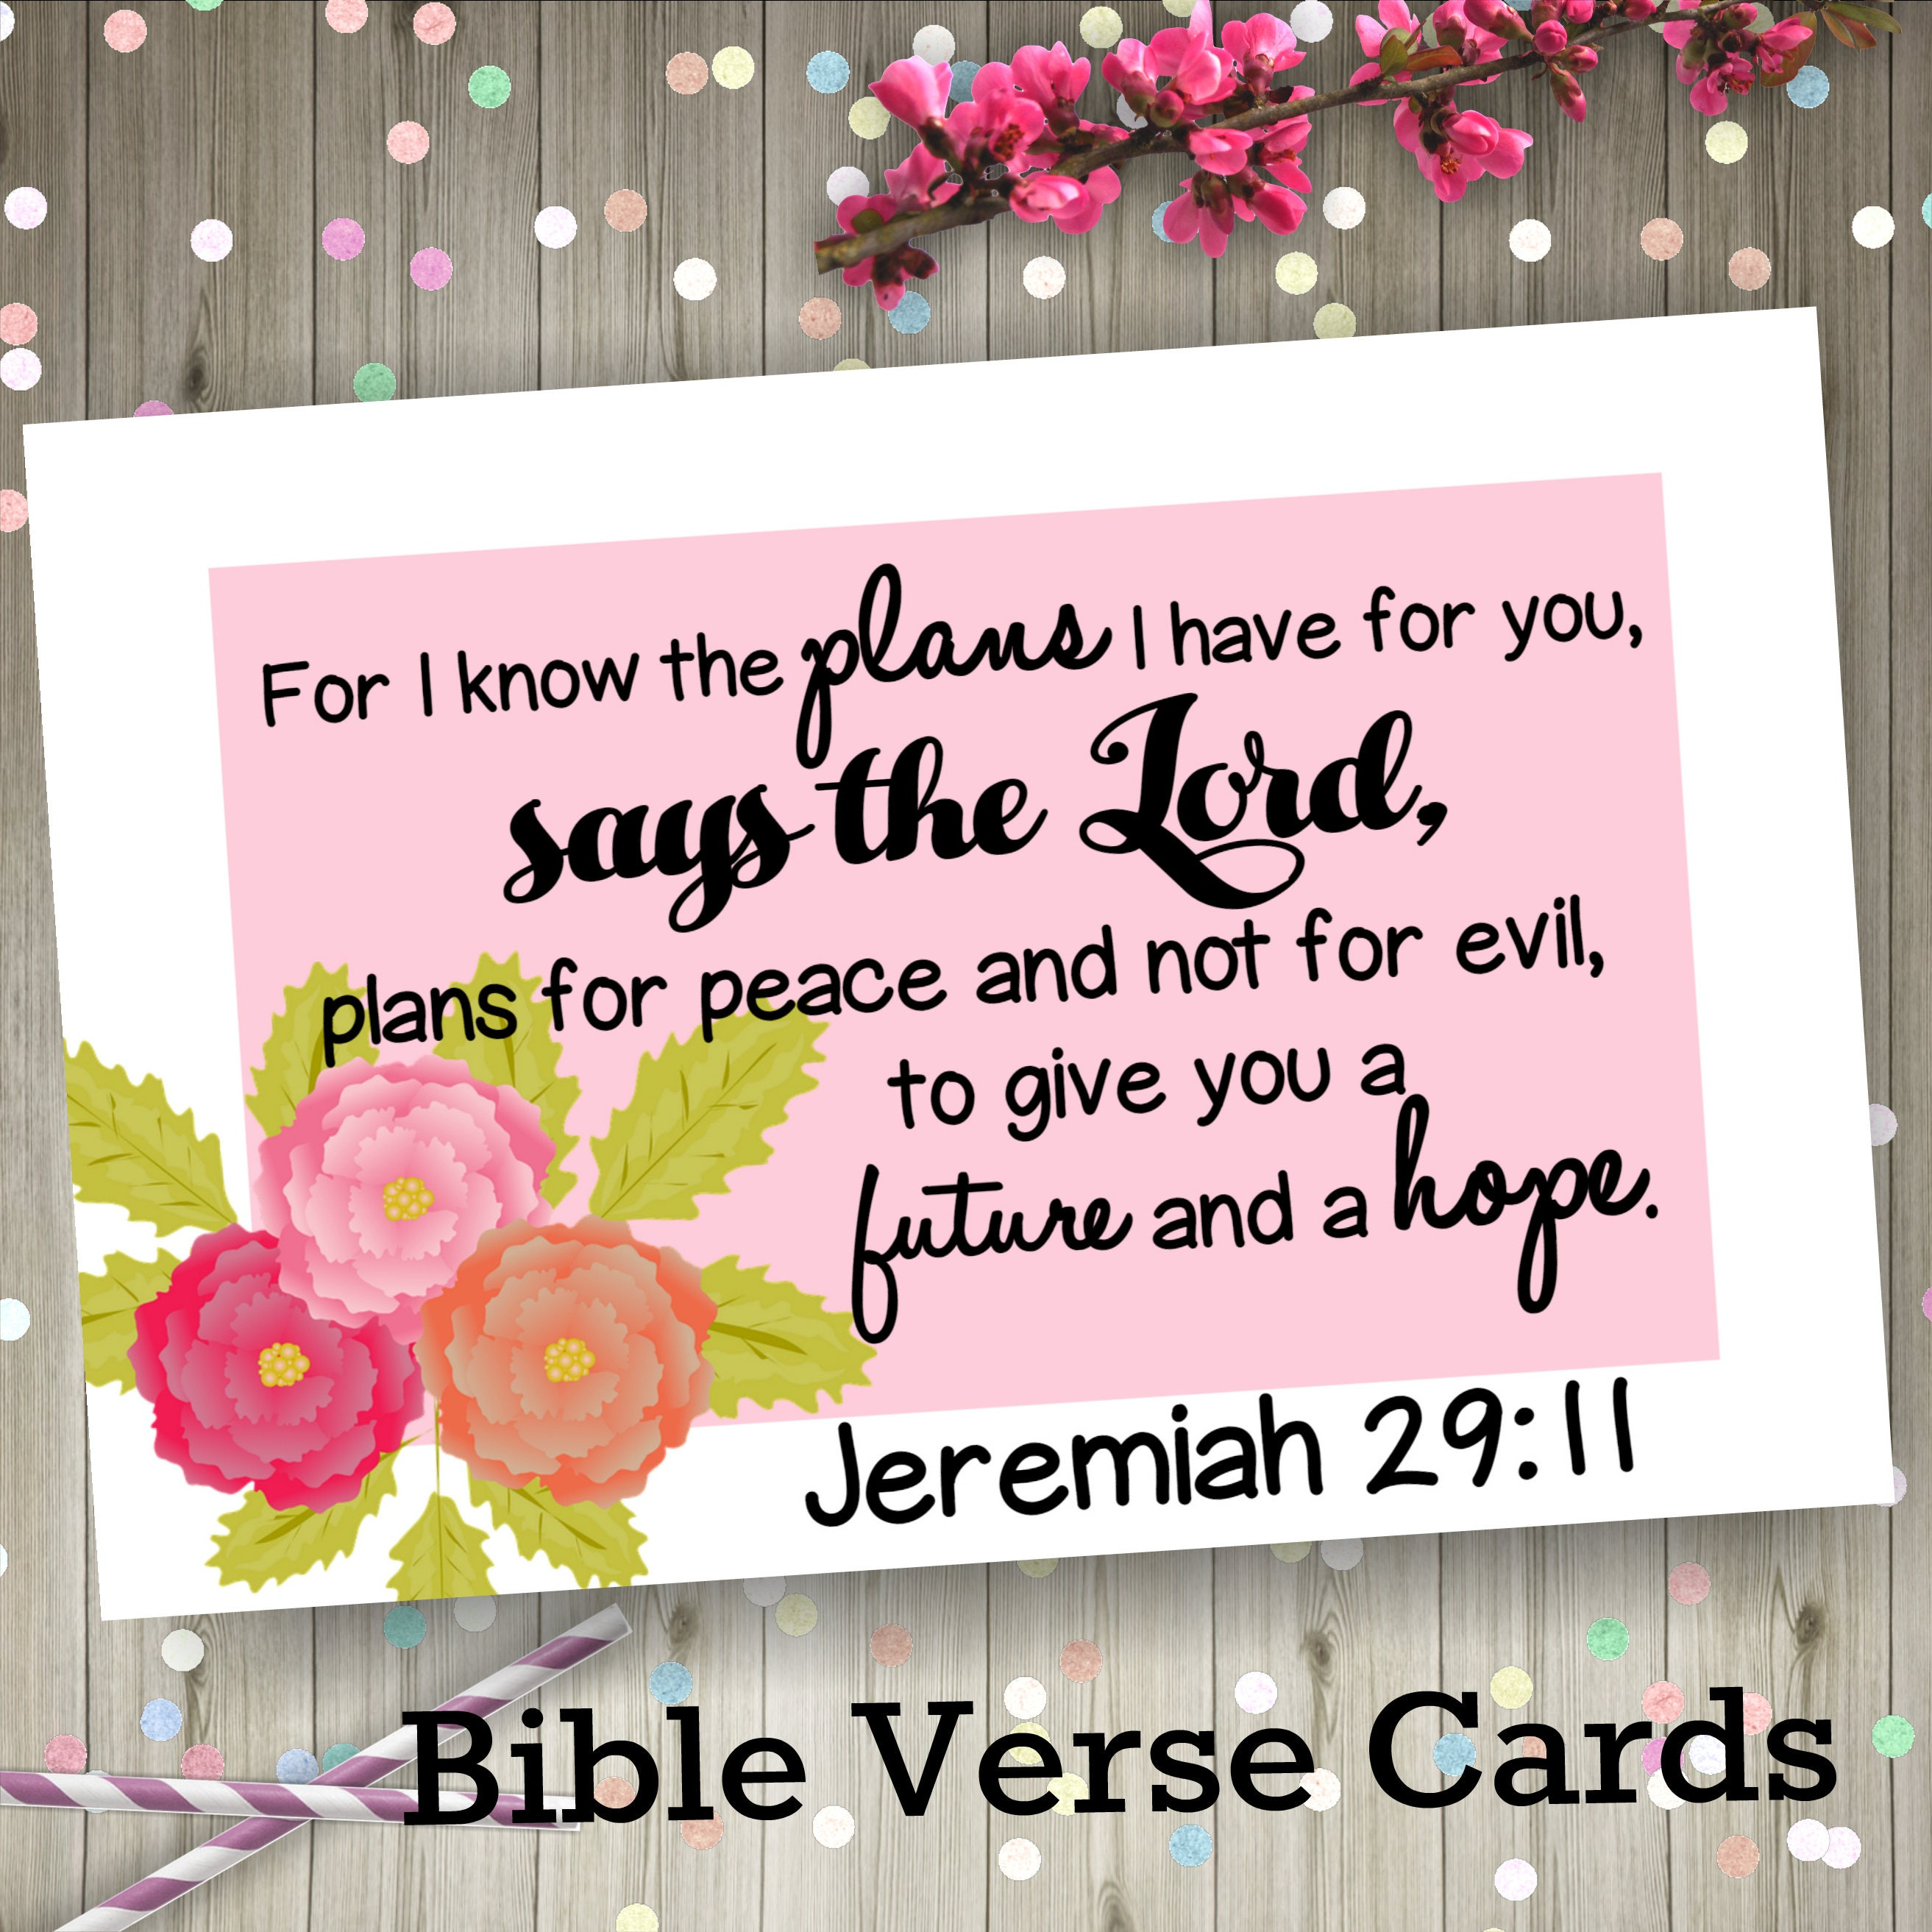 Bible verse cards Christian Motivation Christian Gifts | Etsy